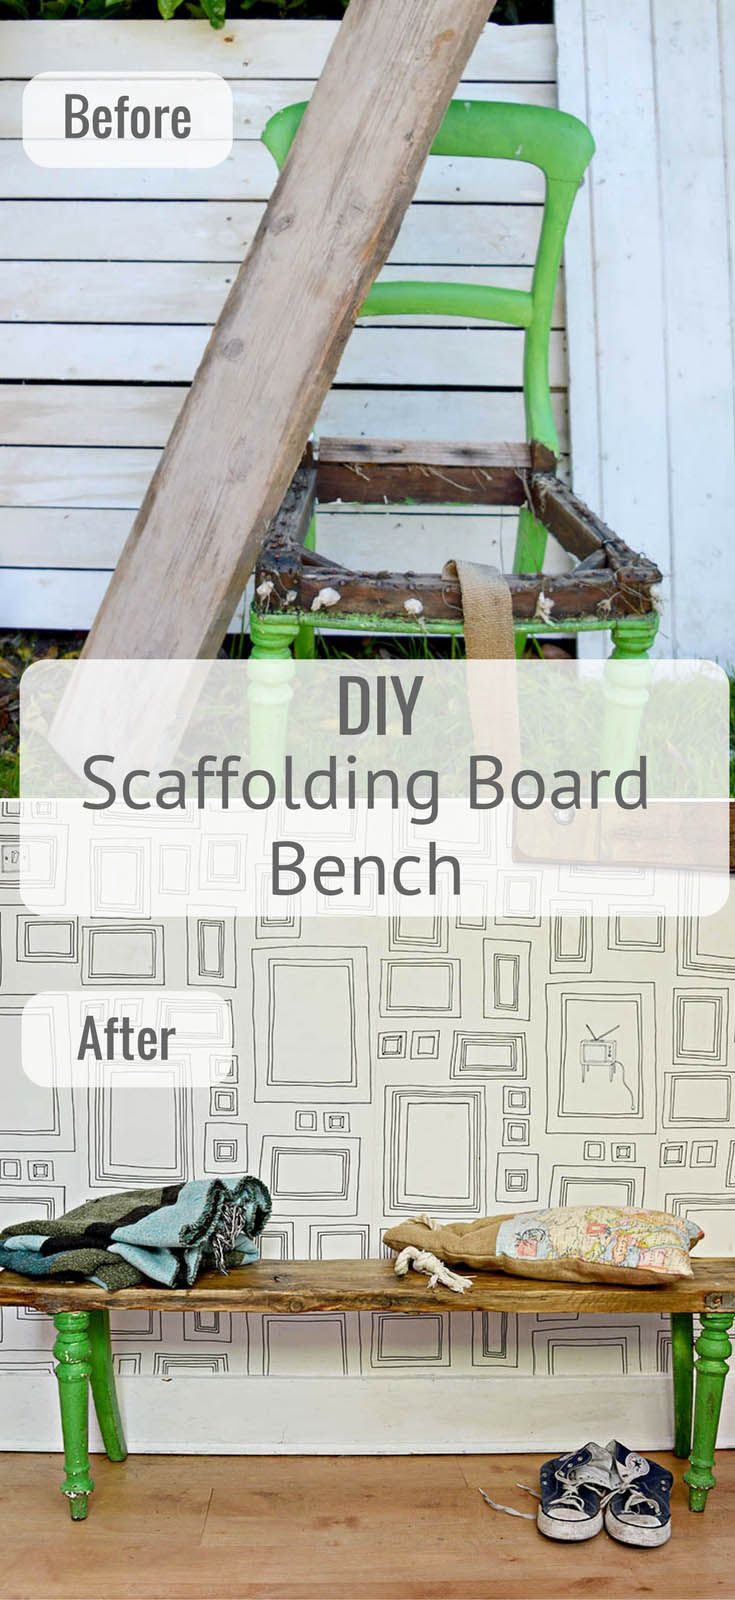 Easy DIY scaffolding board furniture. Combine the legs of an old dining chair with a scaffolding board for a unique upcycled wooden bench.